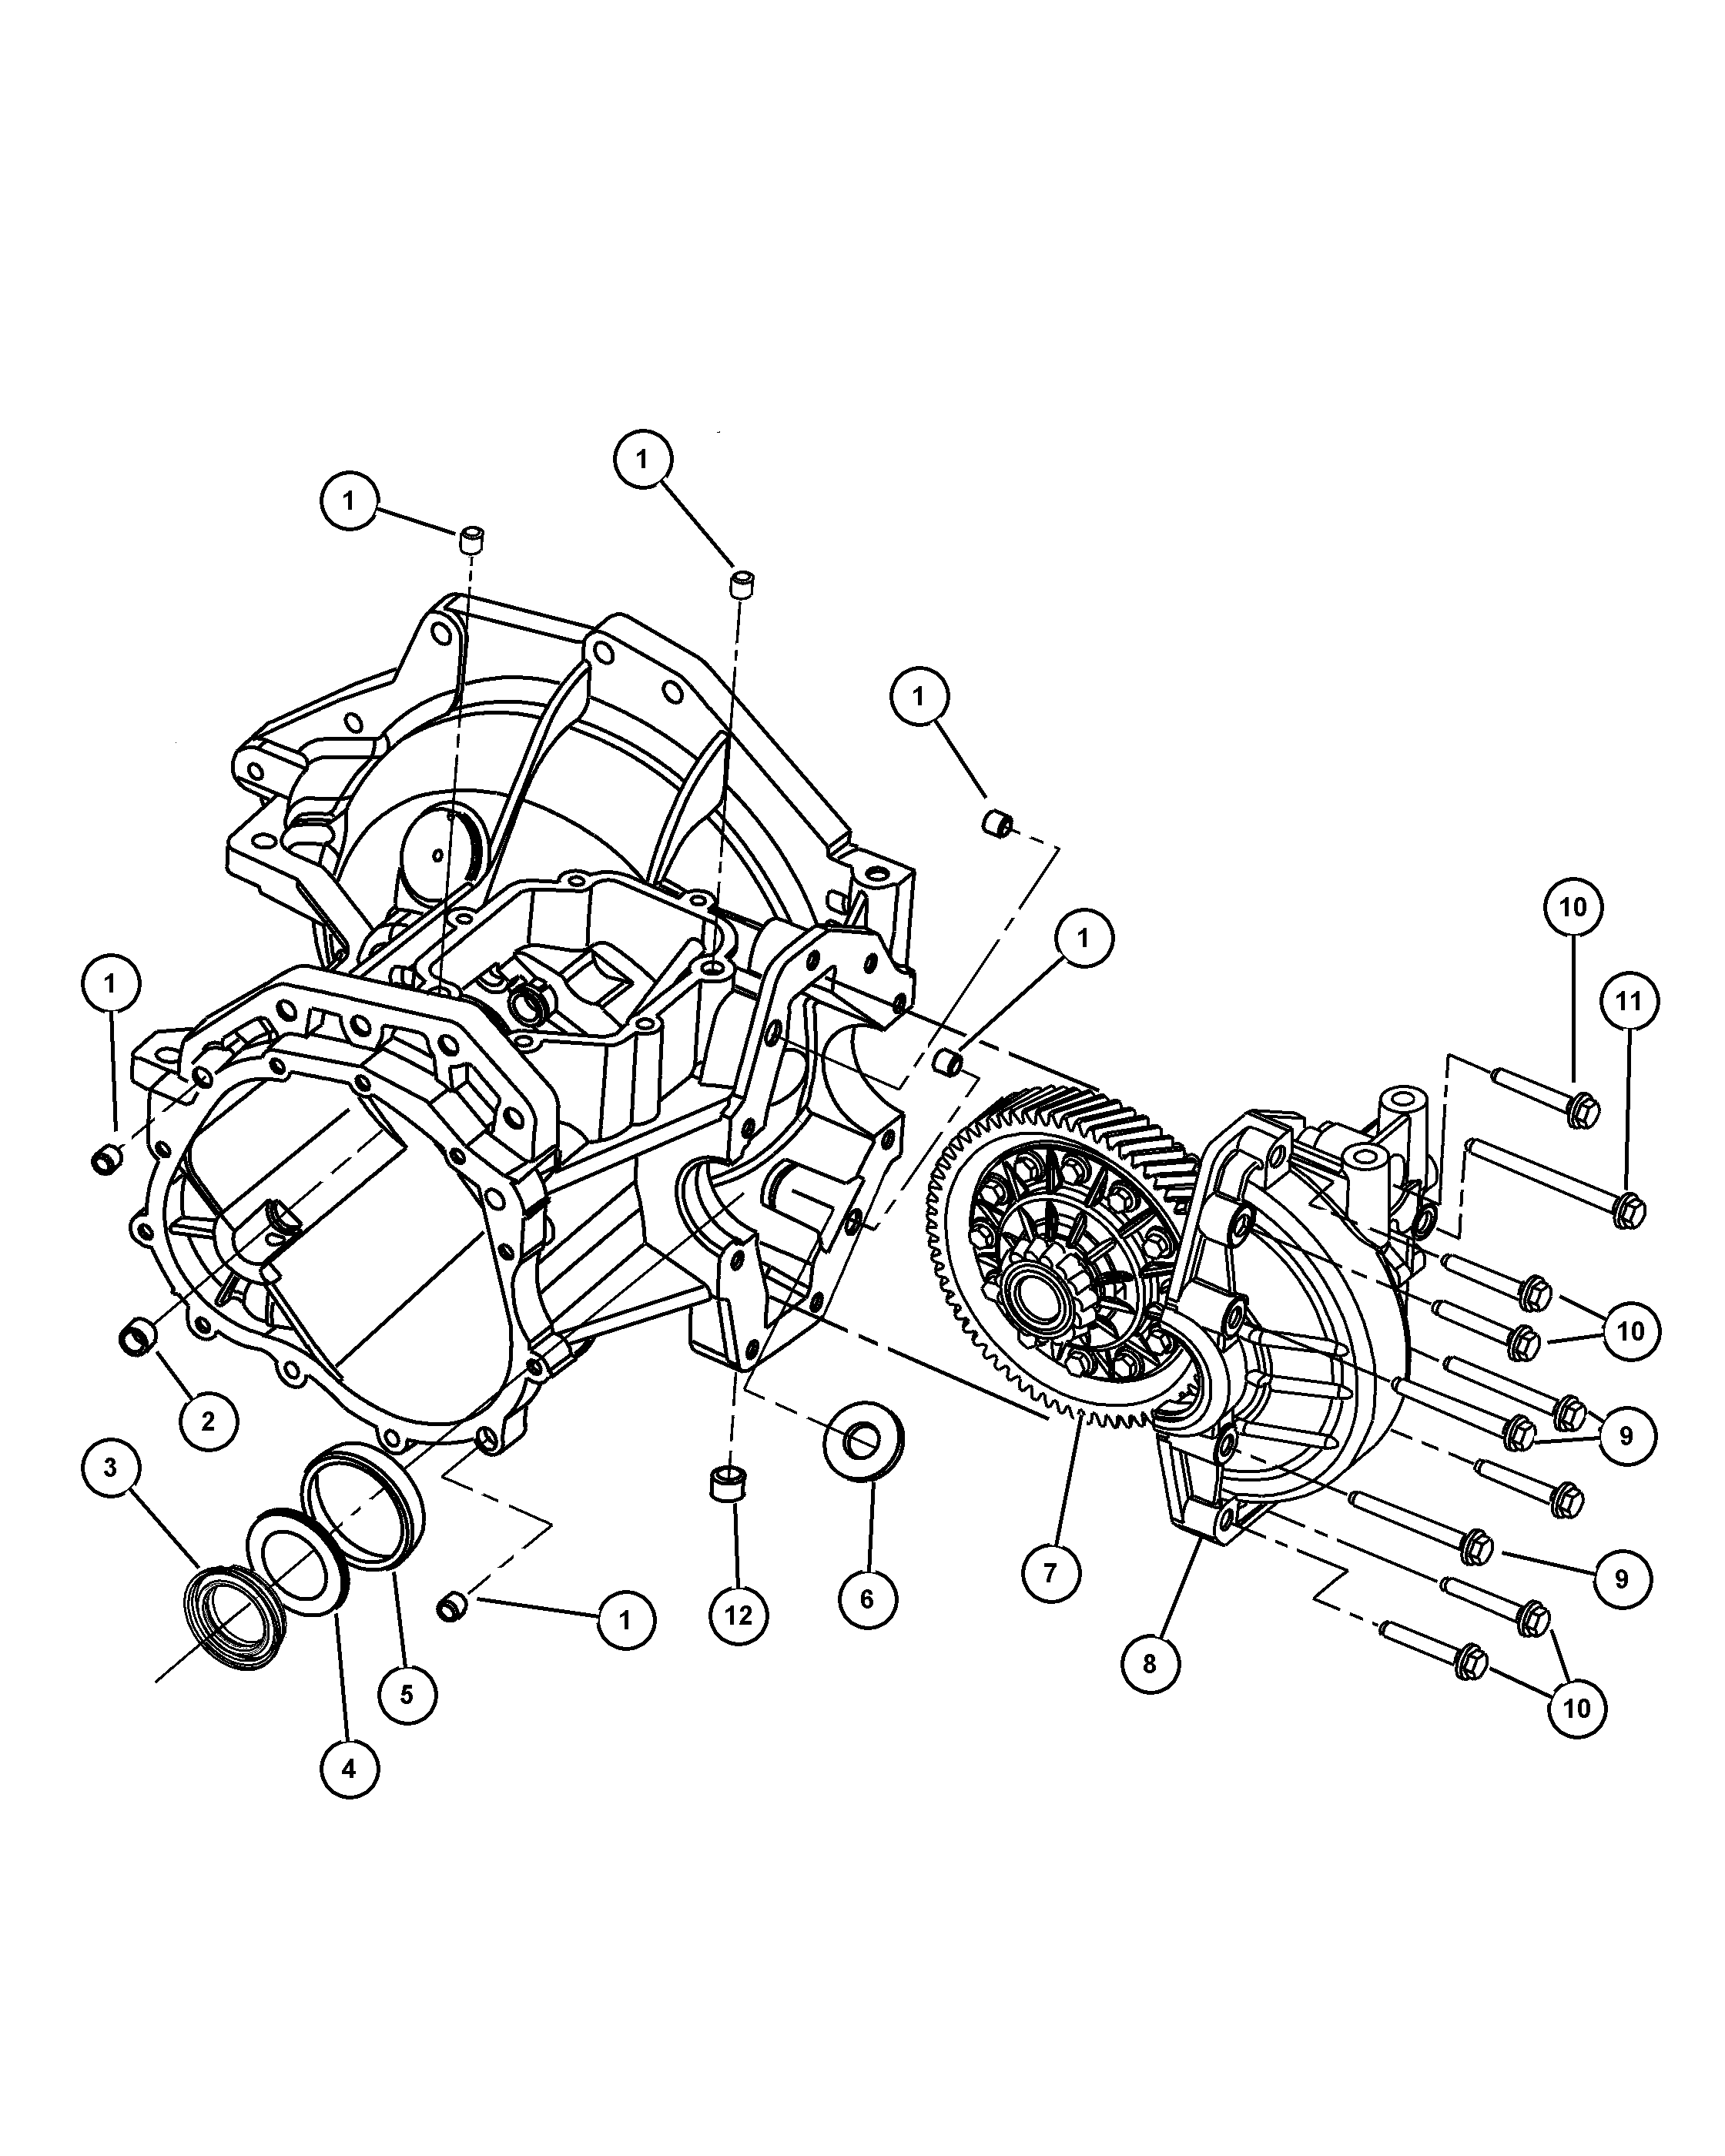 Bmw 323i Parts Diagram